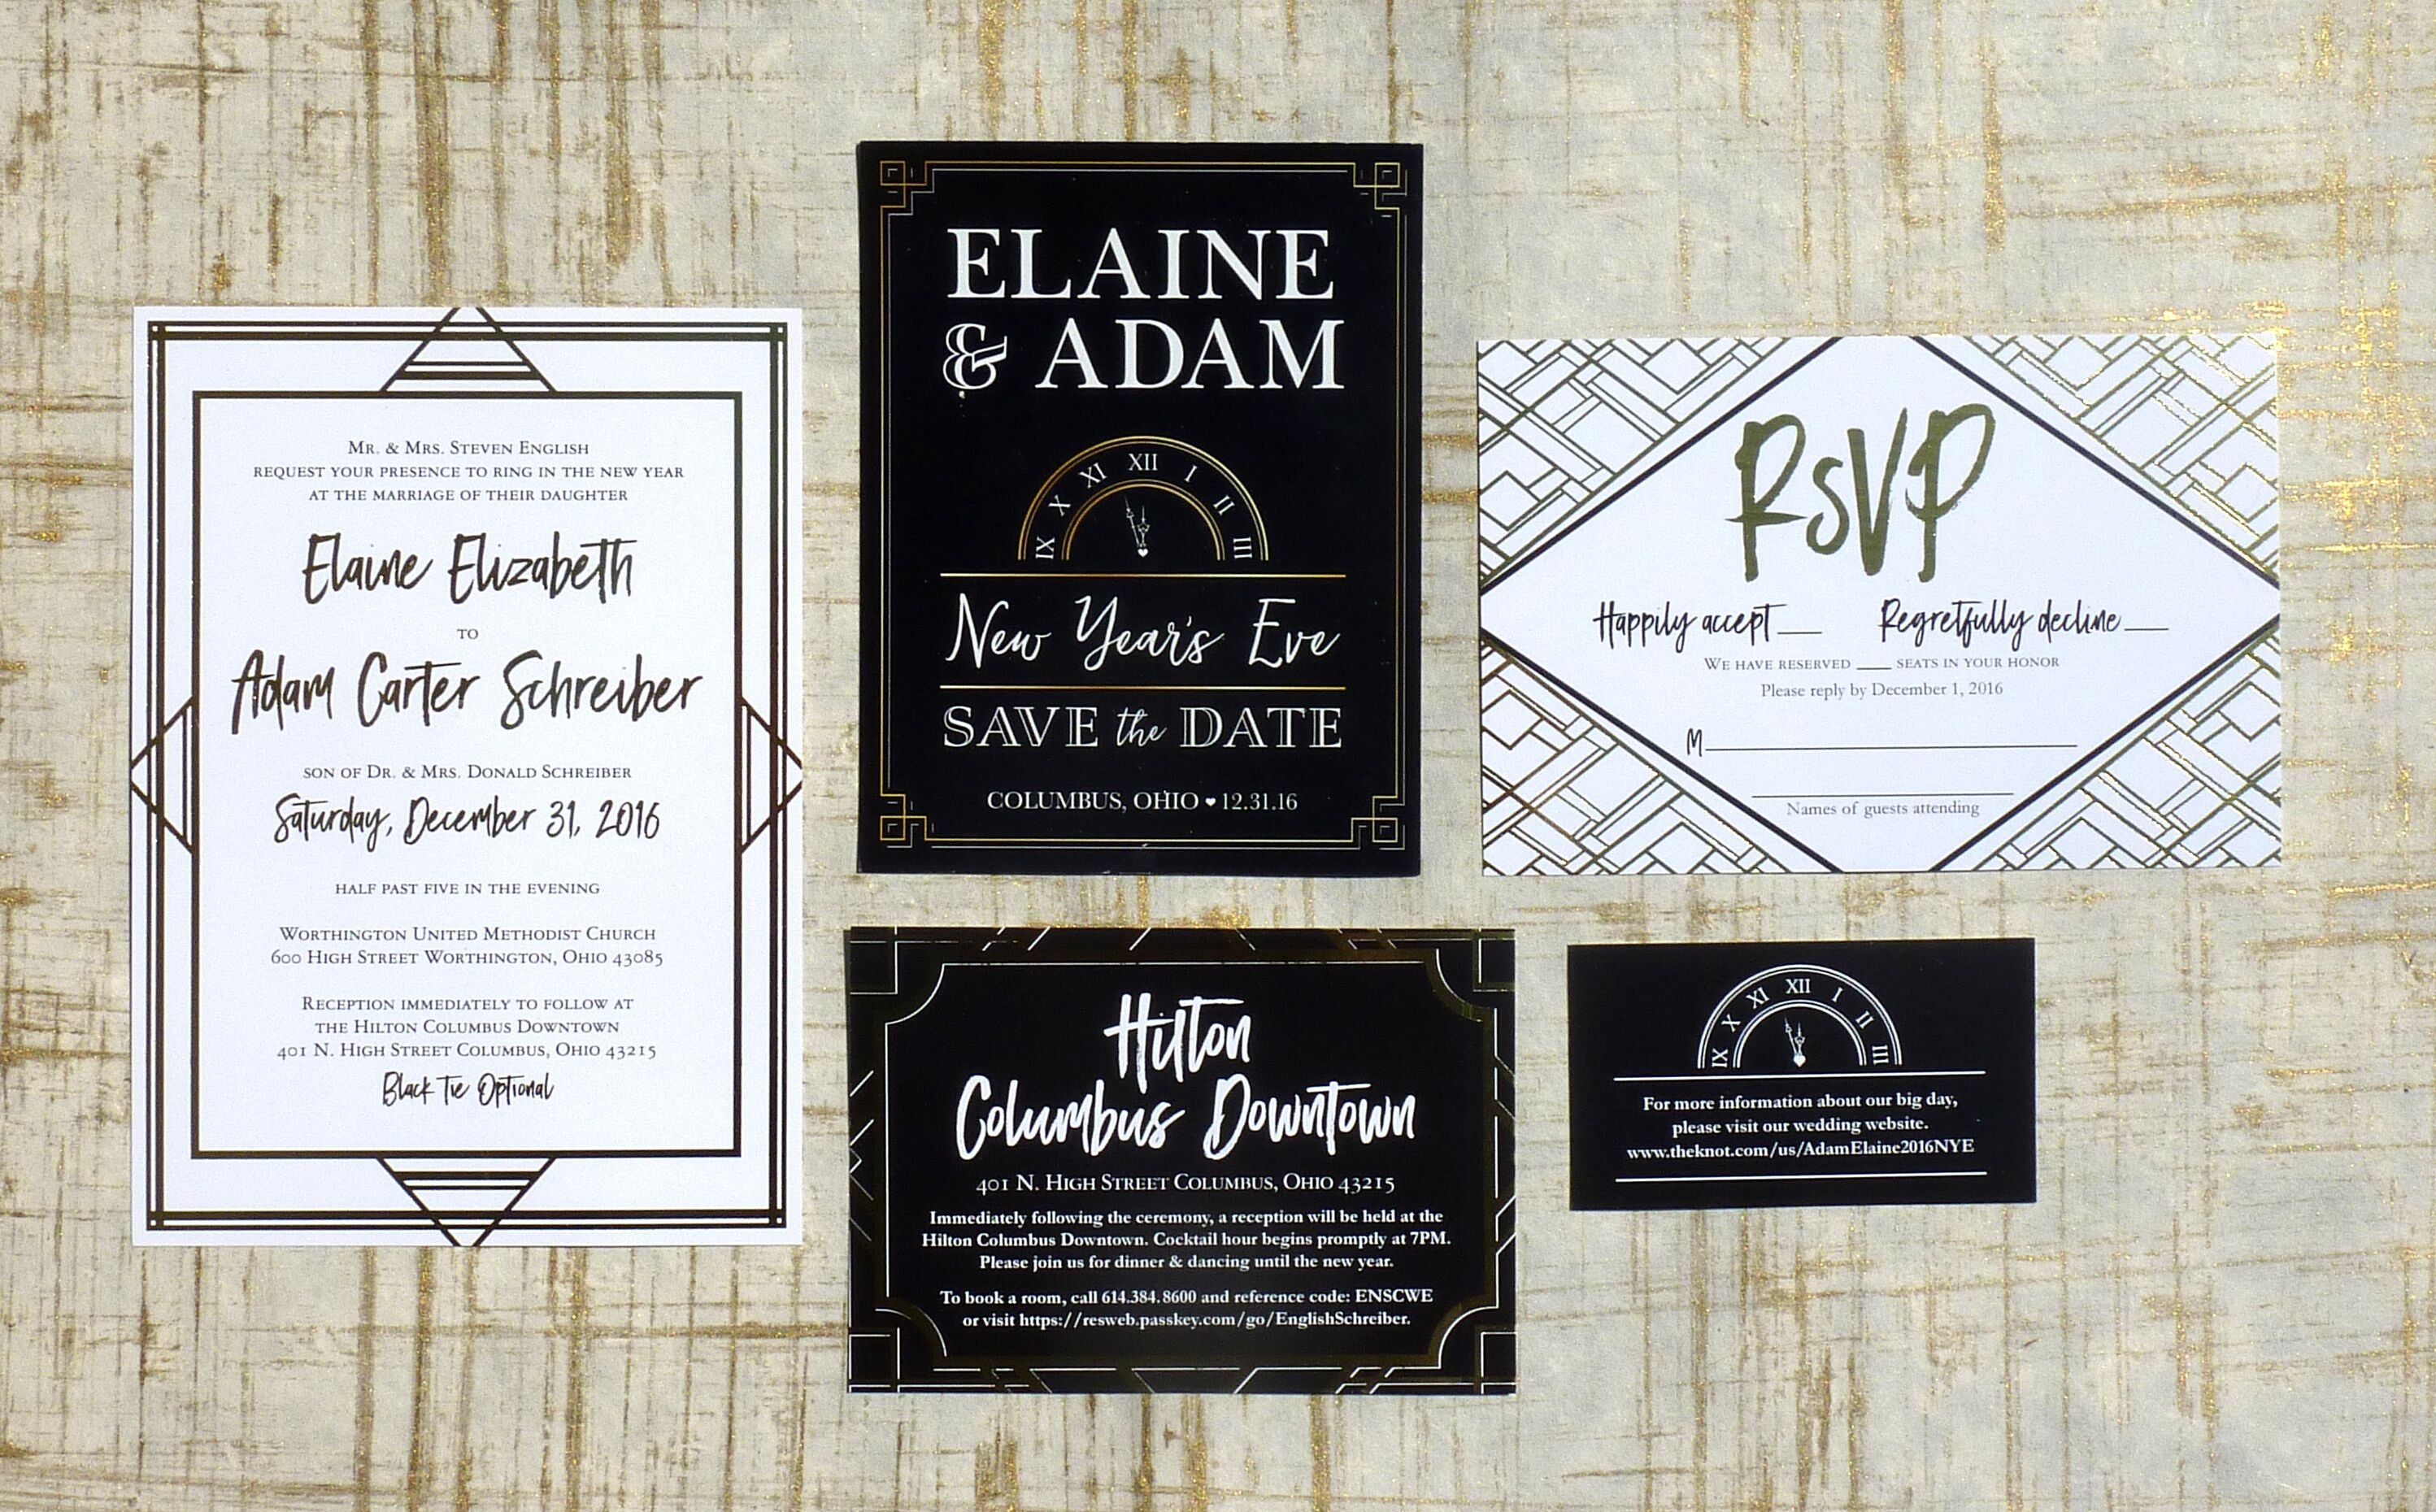 Invitations + Paper in Columbus, OH - The Knot